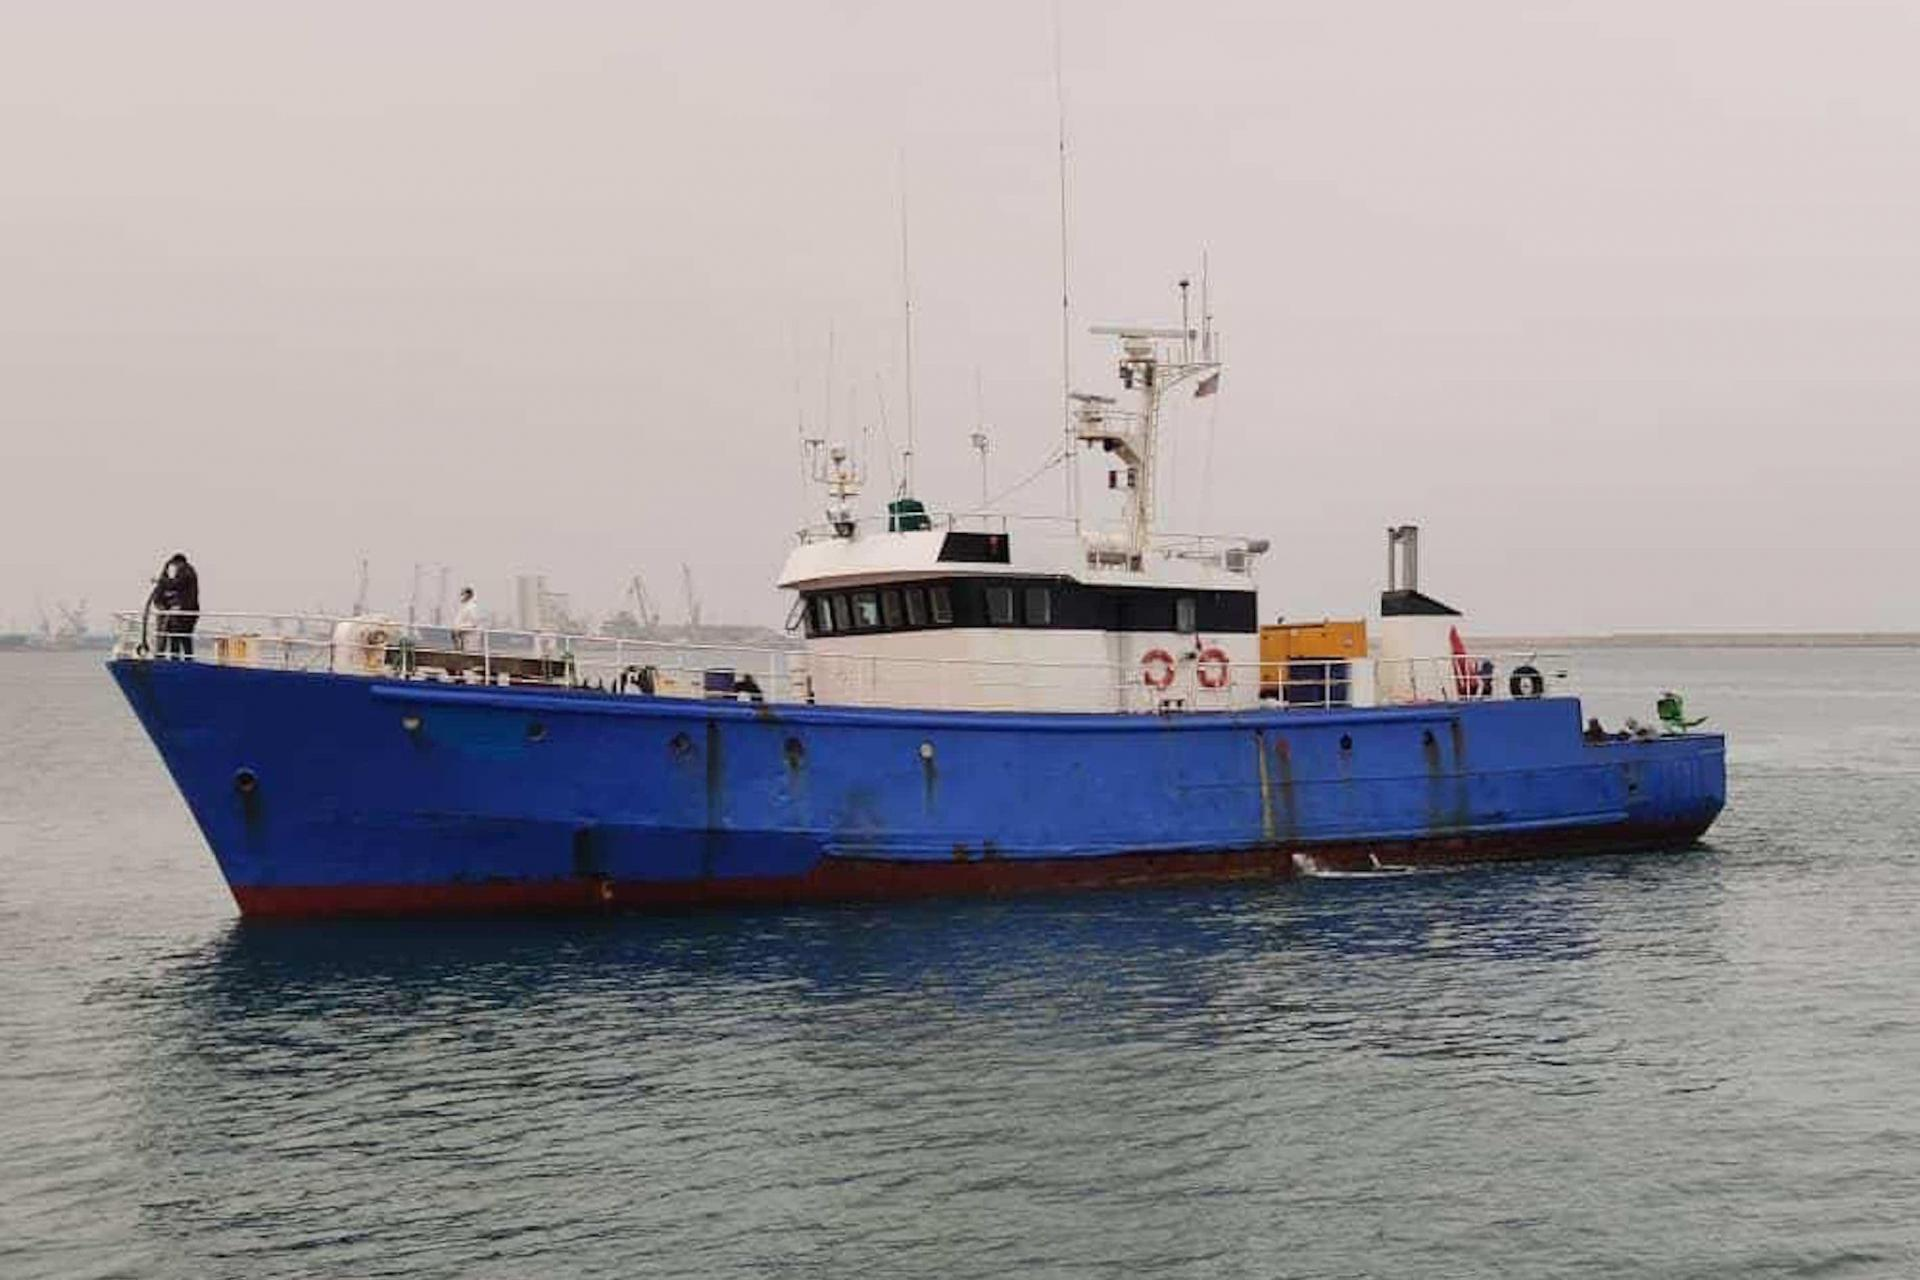 The Mae Yemenja, owned by Maltese sea captain Carmelo Grech, brought the migrants to Libya. Photo: Manuel Delia